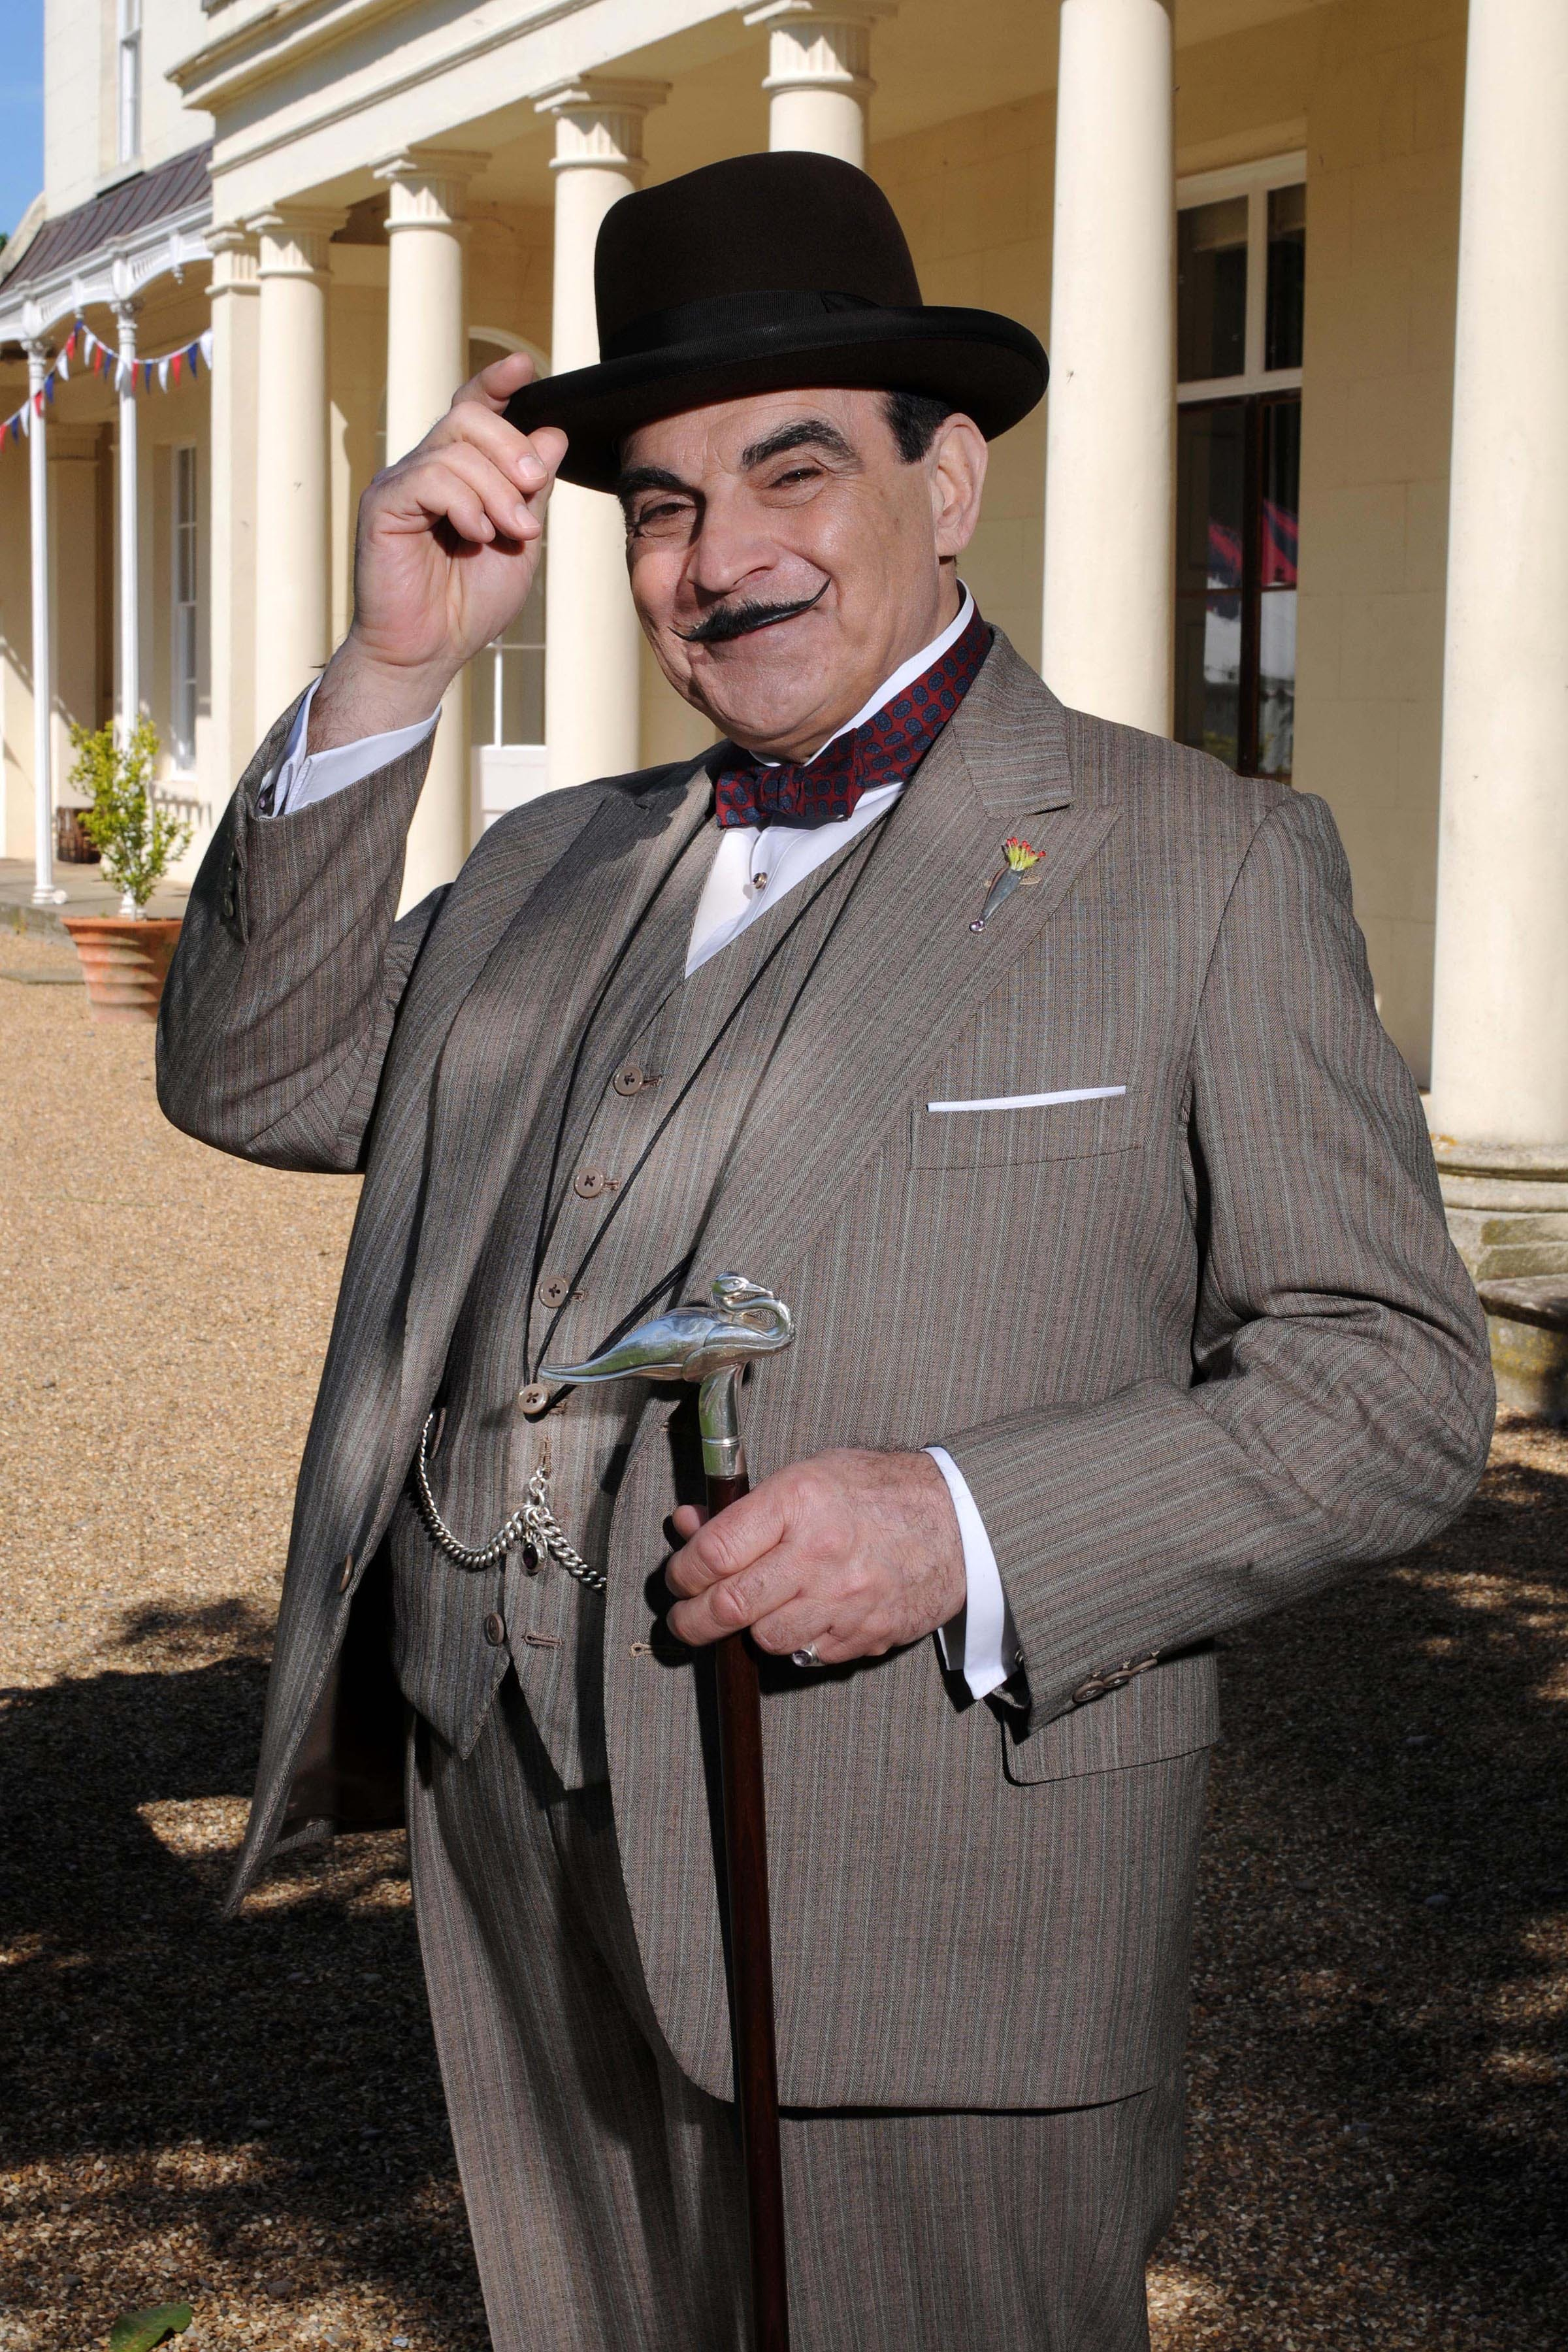 david suchet daughterdavid suchet interview, david suchet young, david suchet wiki, david suchet hercule poirot, david suchet doctor who, david suchet poirot, david suchet 2017, david suchet theatre, david suchet twitter, david suchet family, david suchet daughter, david suchet instagram, david suchet st paul, david suchet imdb, david suchet sons, david suchet now, david suchet testimony, david suchet official facebook, david suchet email, david suchet house